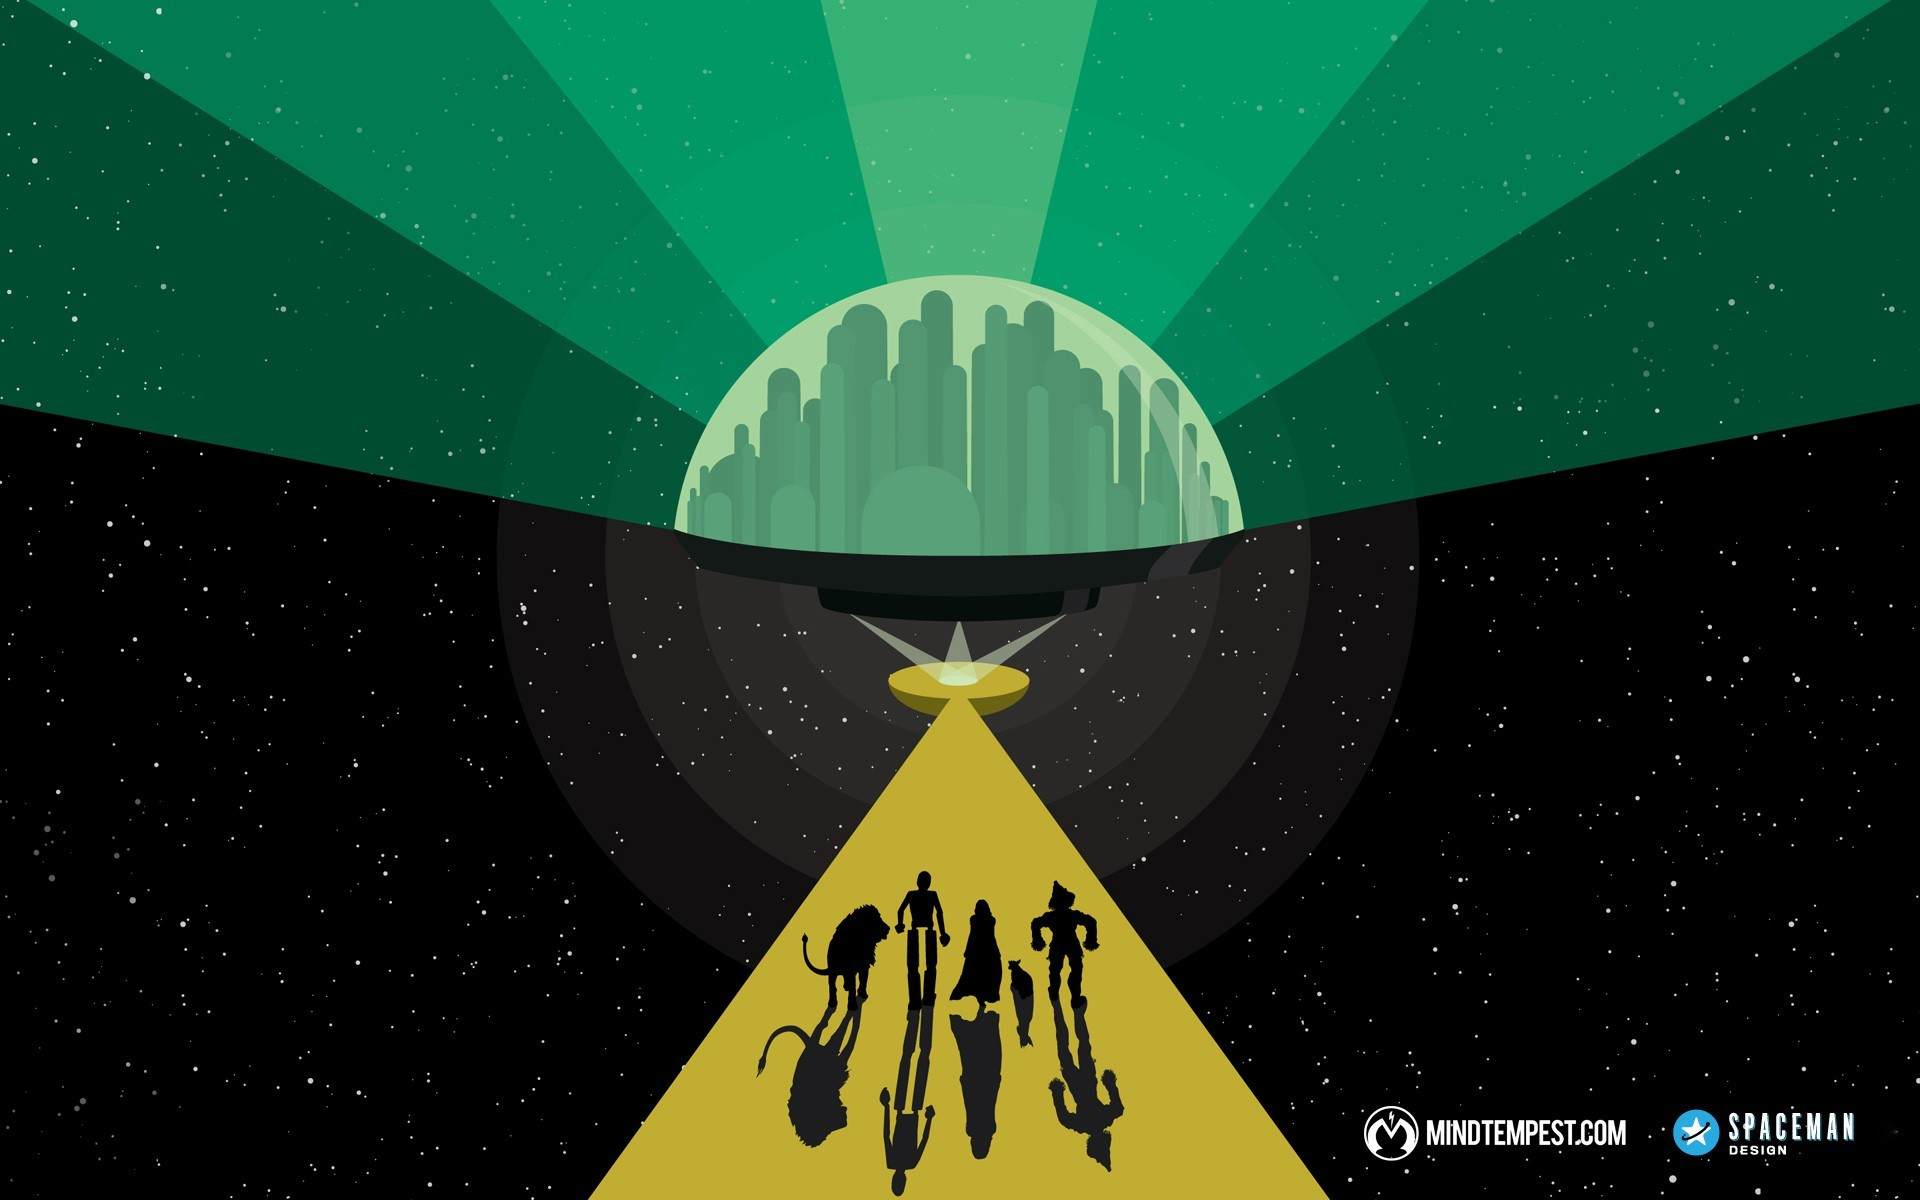 silhouettes paths wizard of oz artwork cities wallpaper